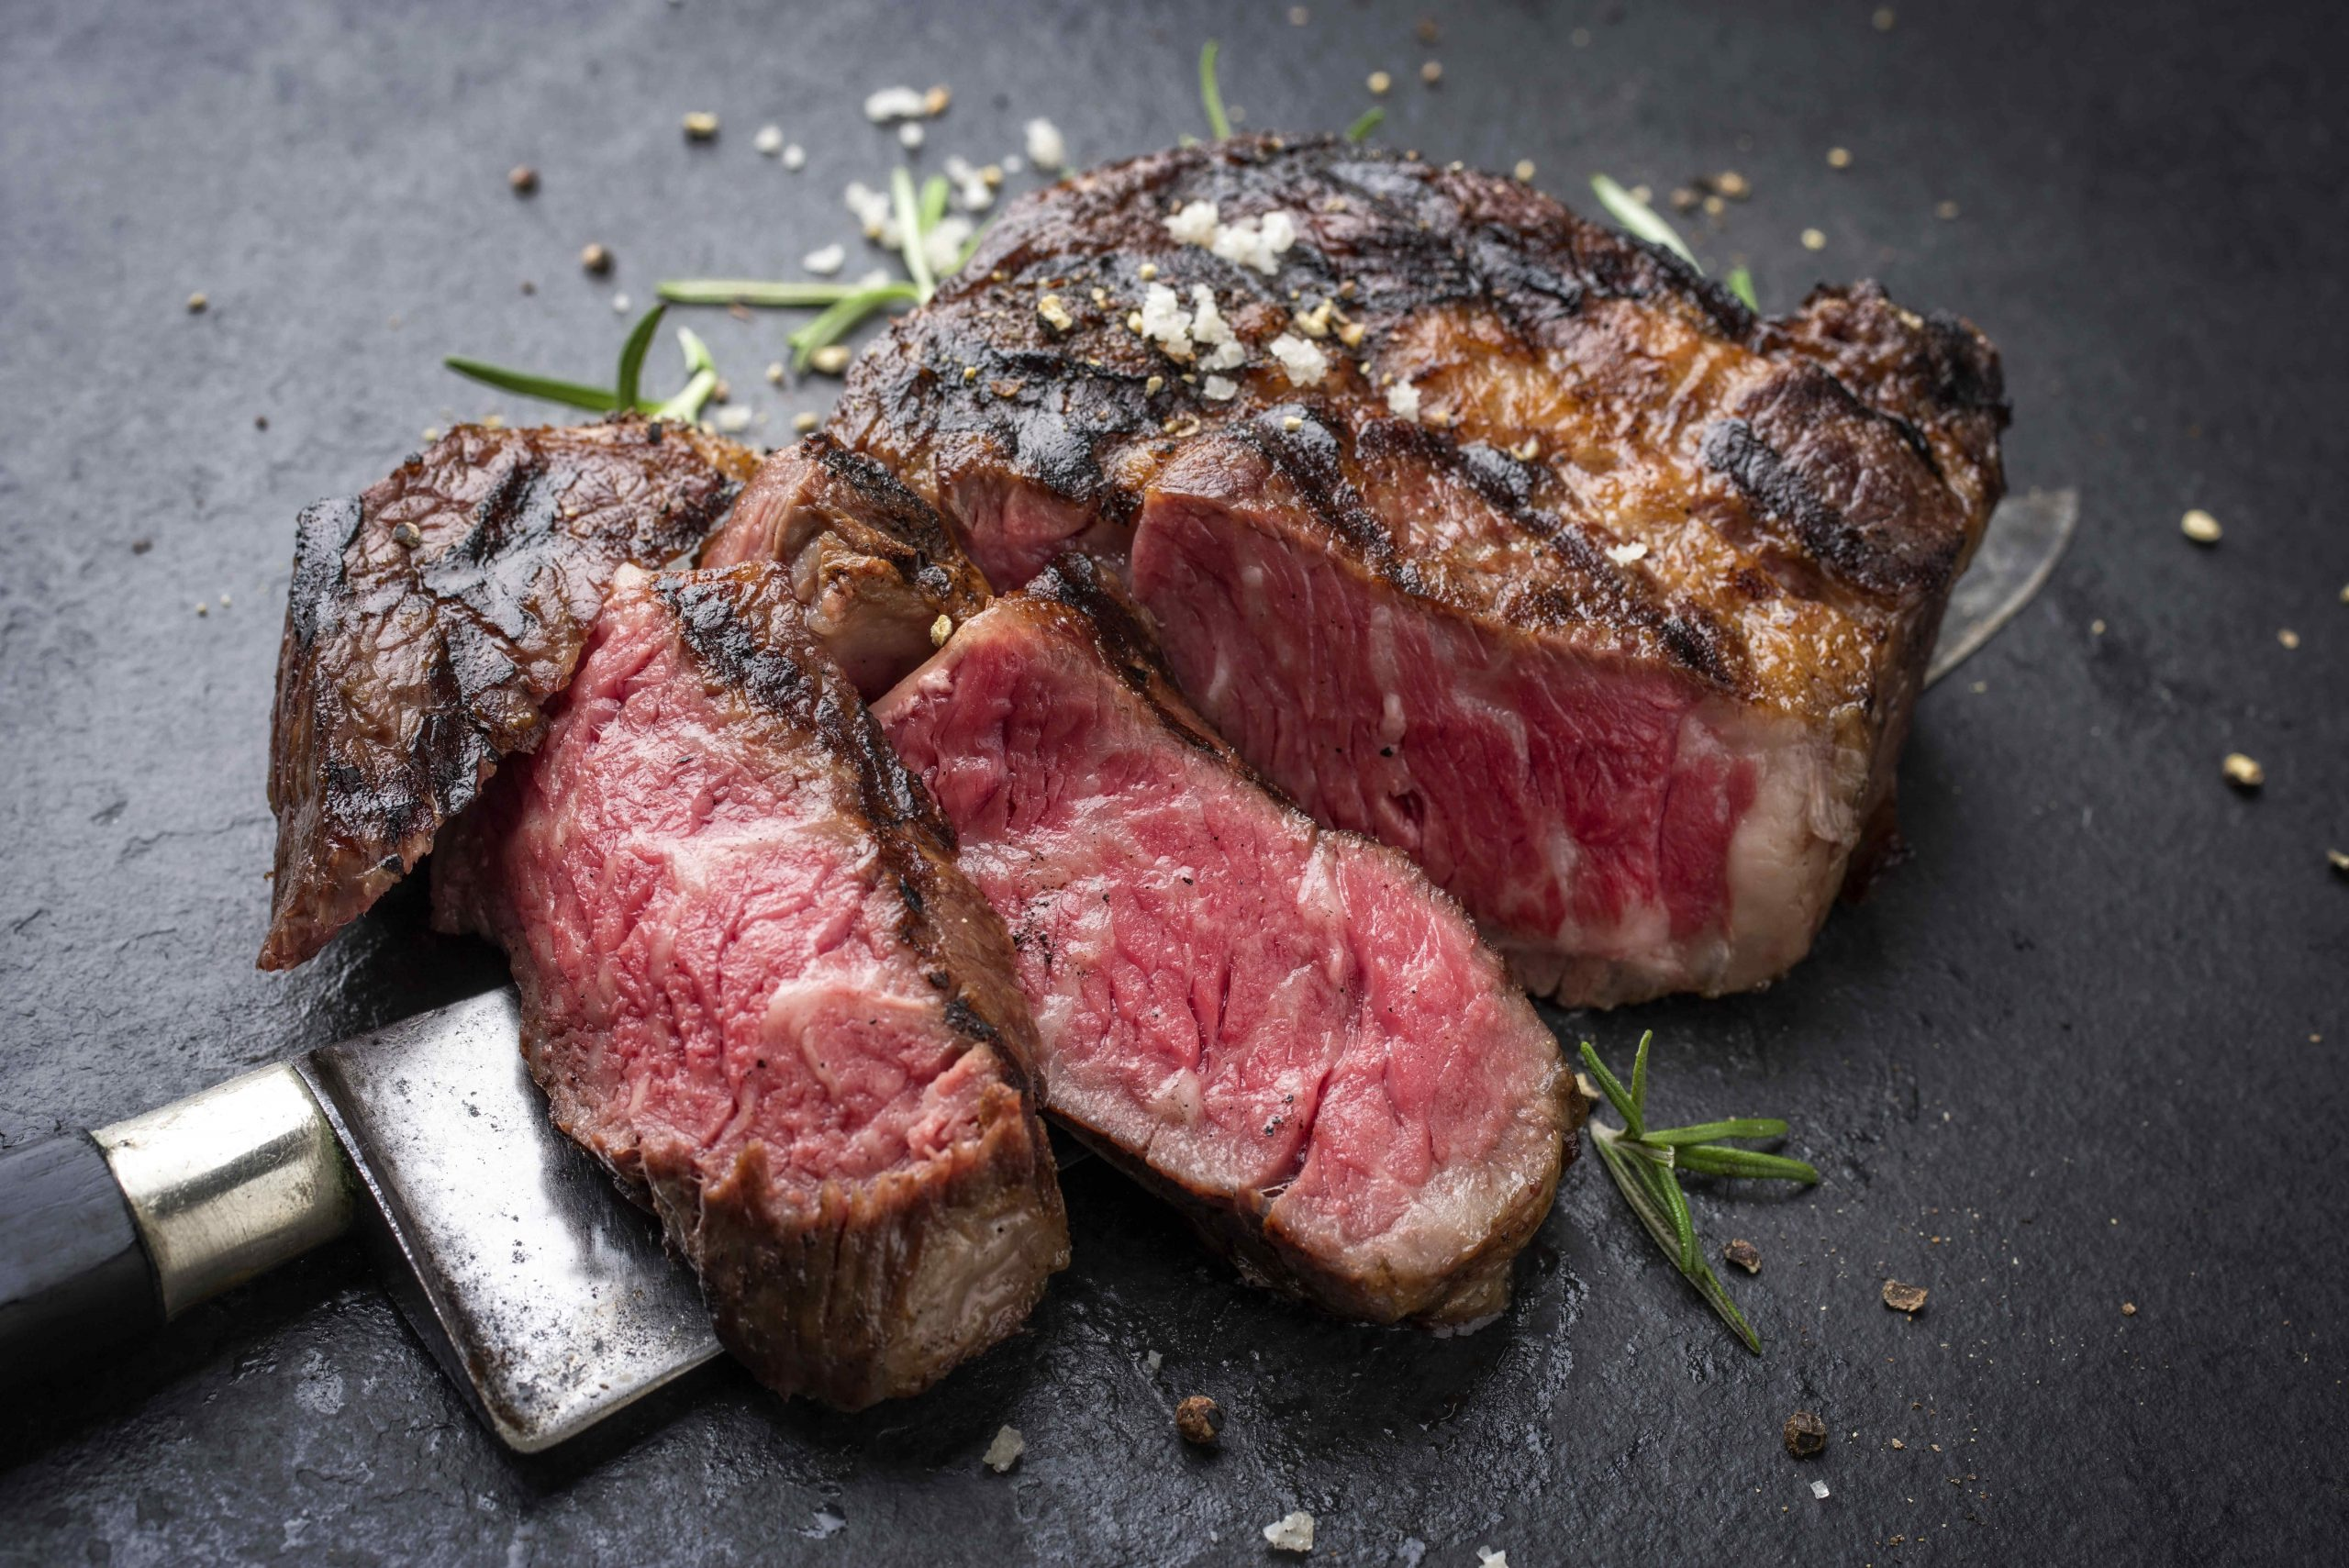 Barbecue aged wagyu rib-eye steak